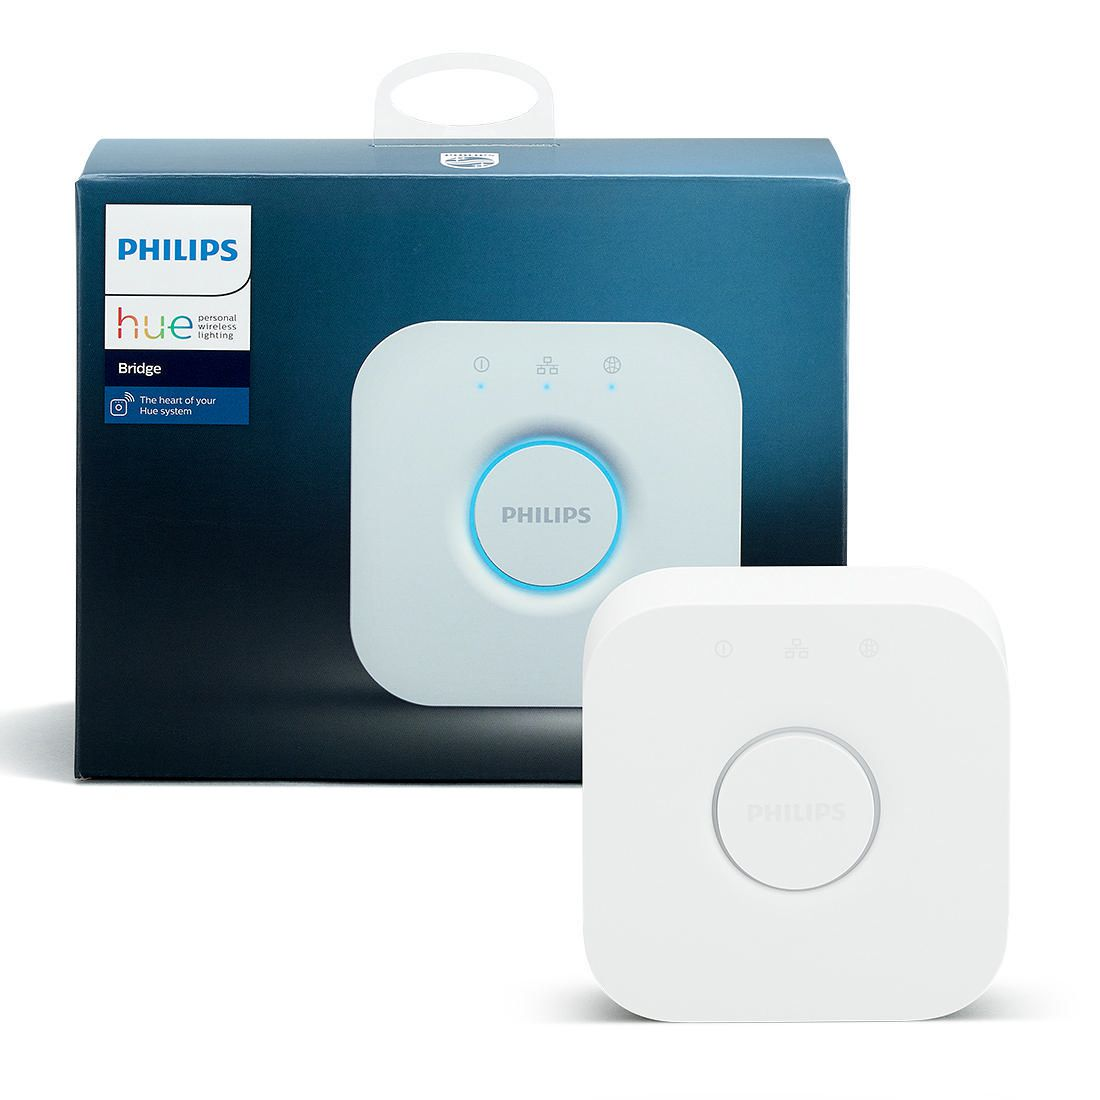 Philips Hub Philips Hue Bridge